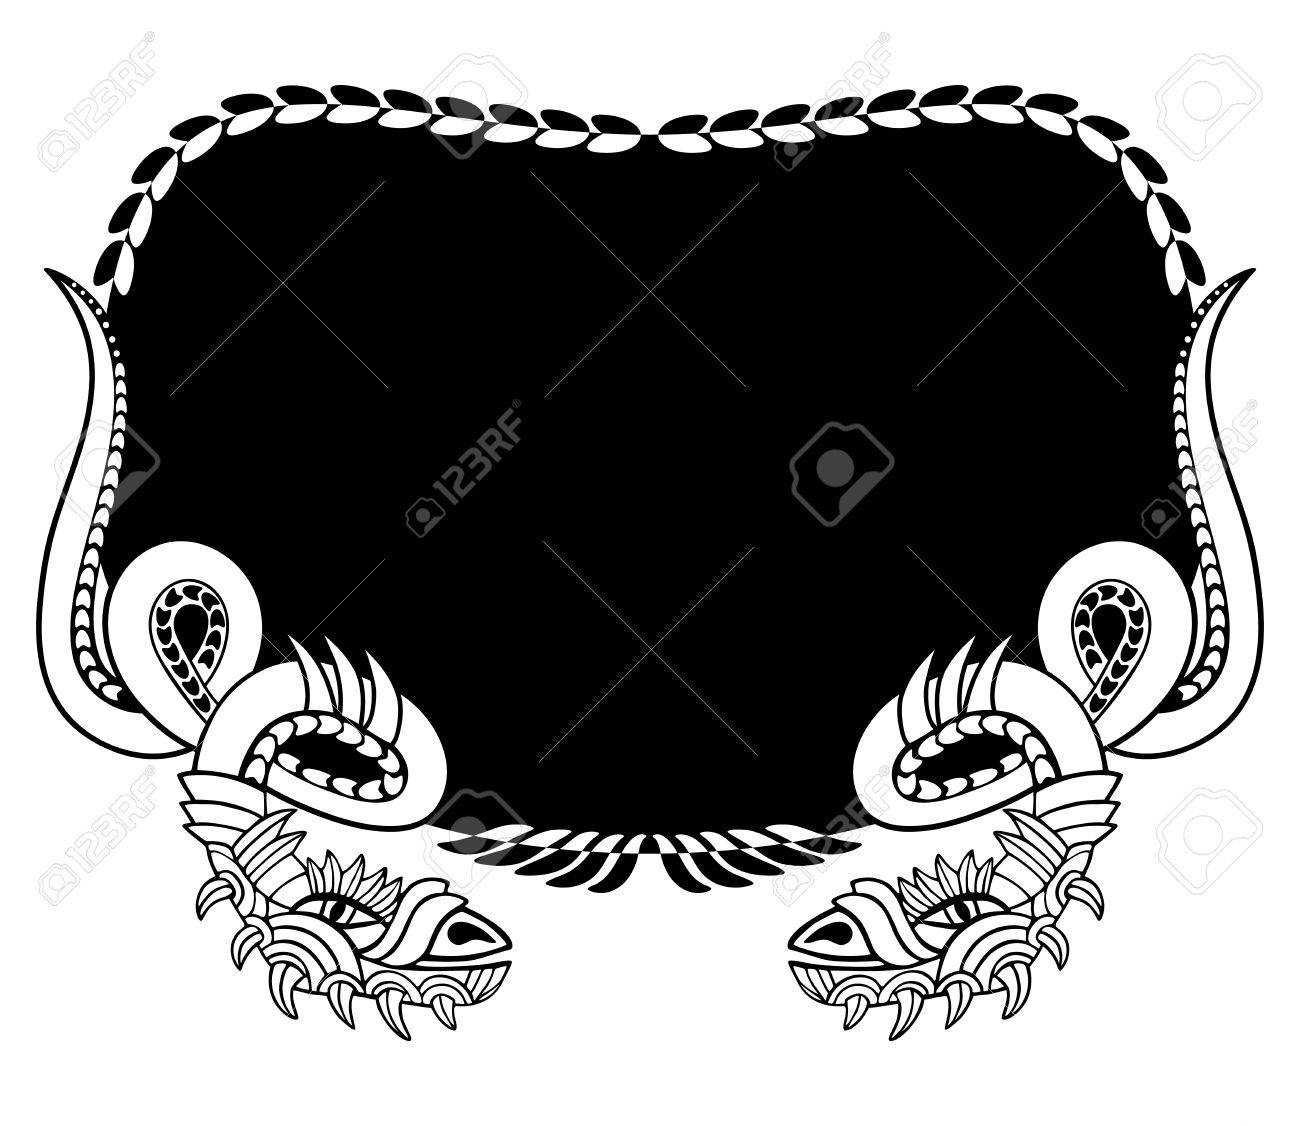 Snake frame. Coloring book and tattoo. Vector illustration. - 74998783